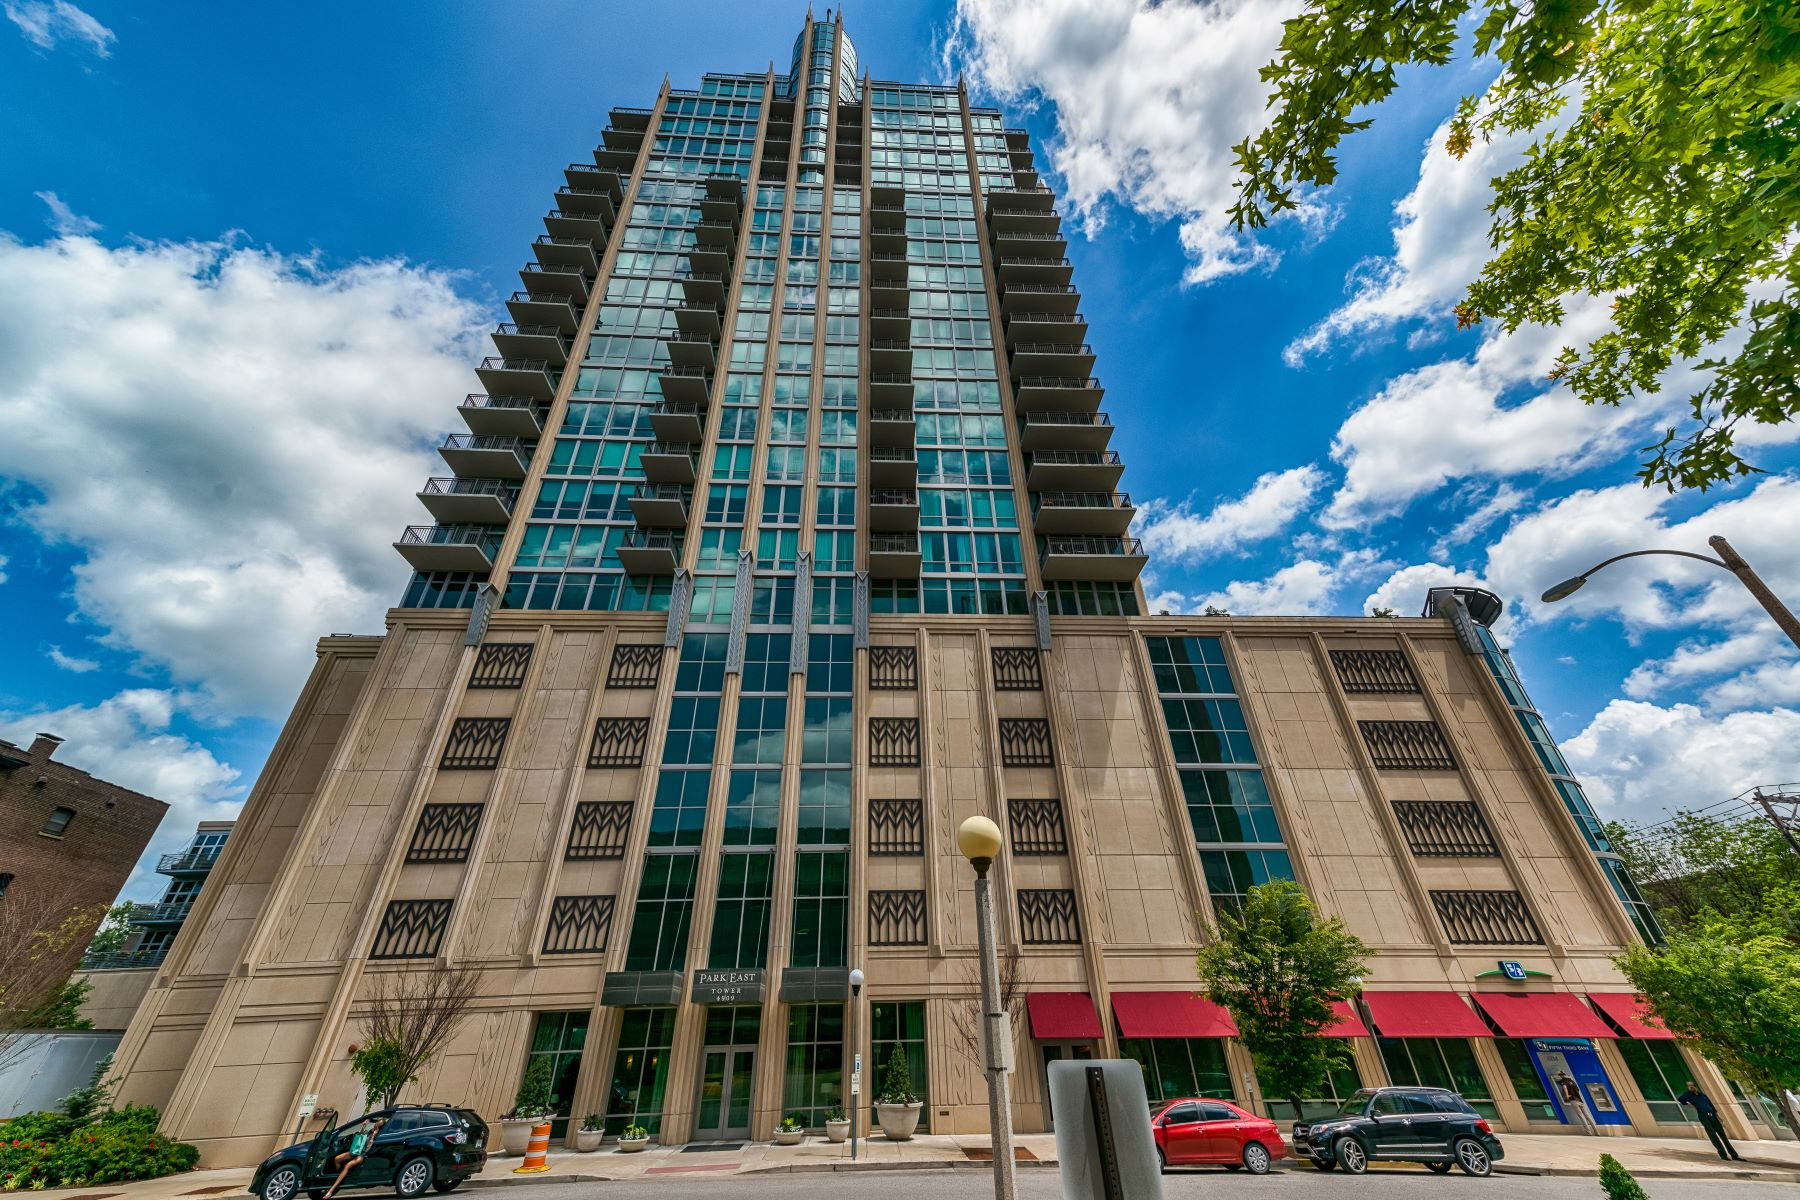 Condominiums for Sale at Park East Tower 4909 Laclede Avenue #2402, St. Louis, Missouri 63108 United States